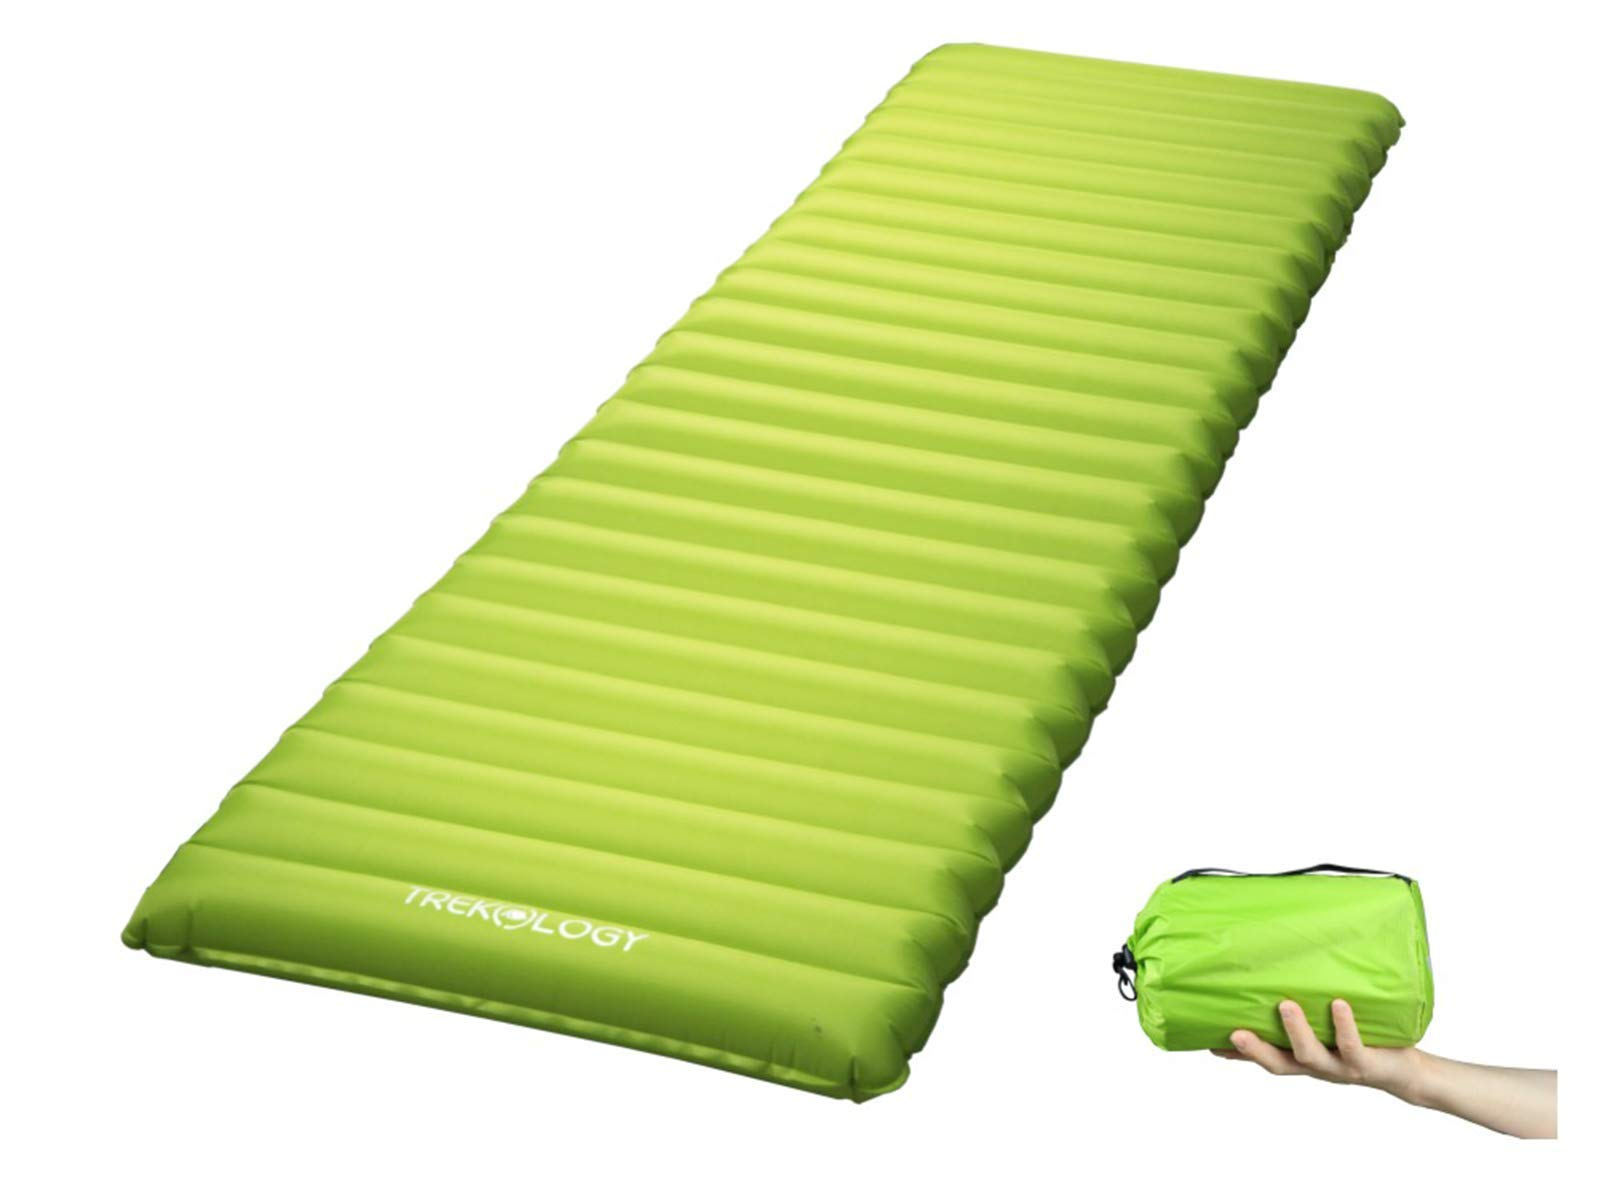 Ultralight Sleeping Pad, Inflating Camping Mattress w/Air Pump Dry Sack Bag - Compact Lightweight Camp Mat, Inflatable Backpacking Gear as Tent Pads, Hammock Mats for Travel, Hiking, Sleep (Green) by Trekology